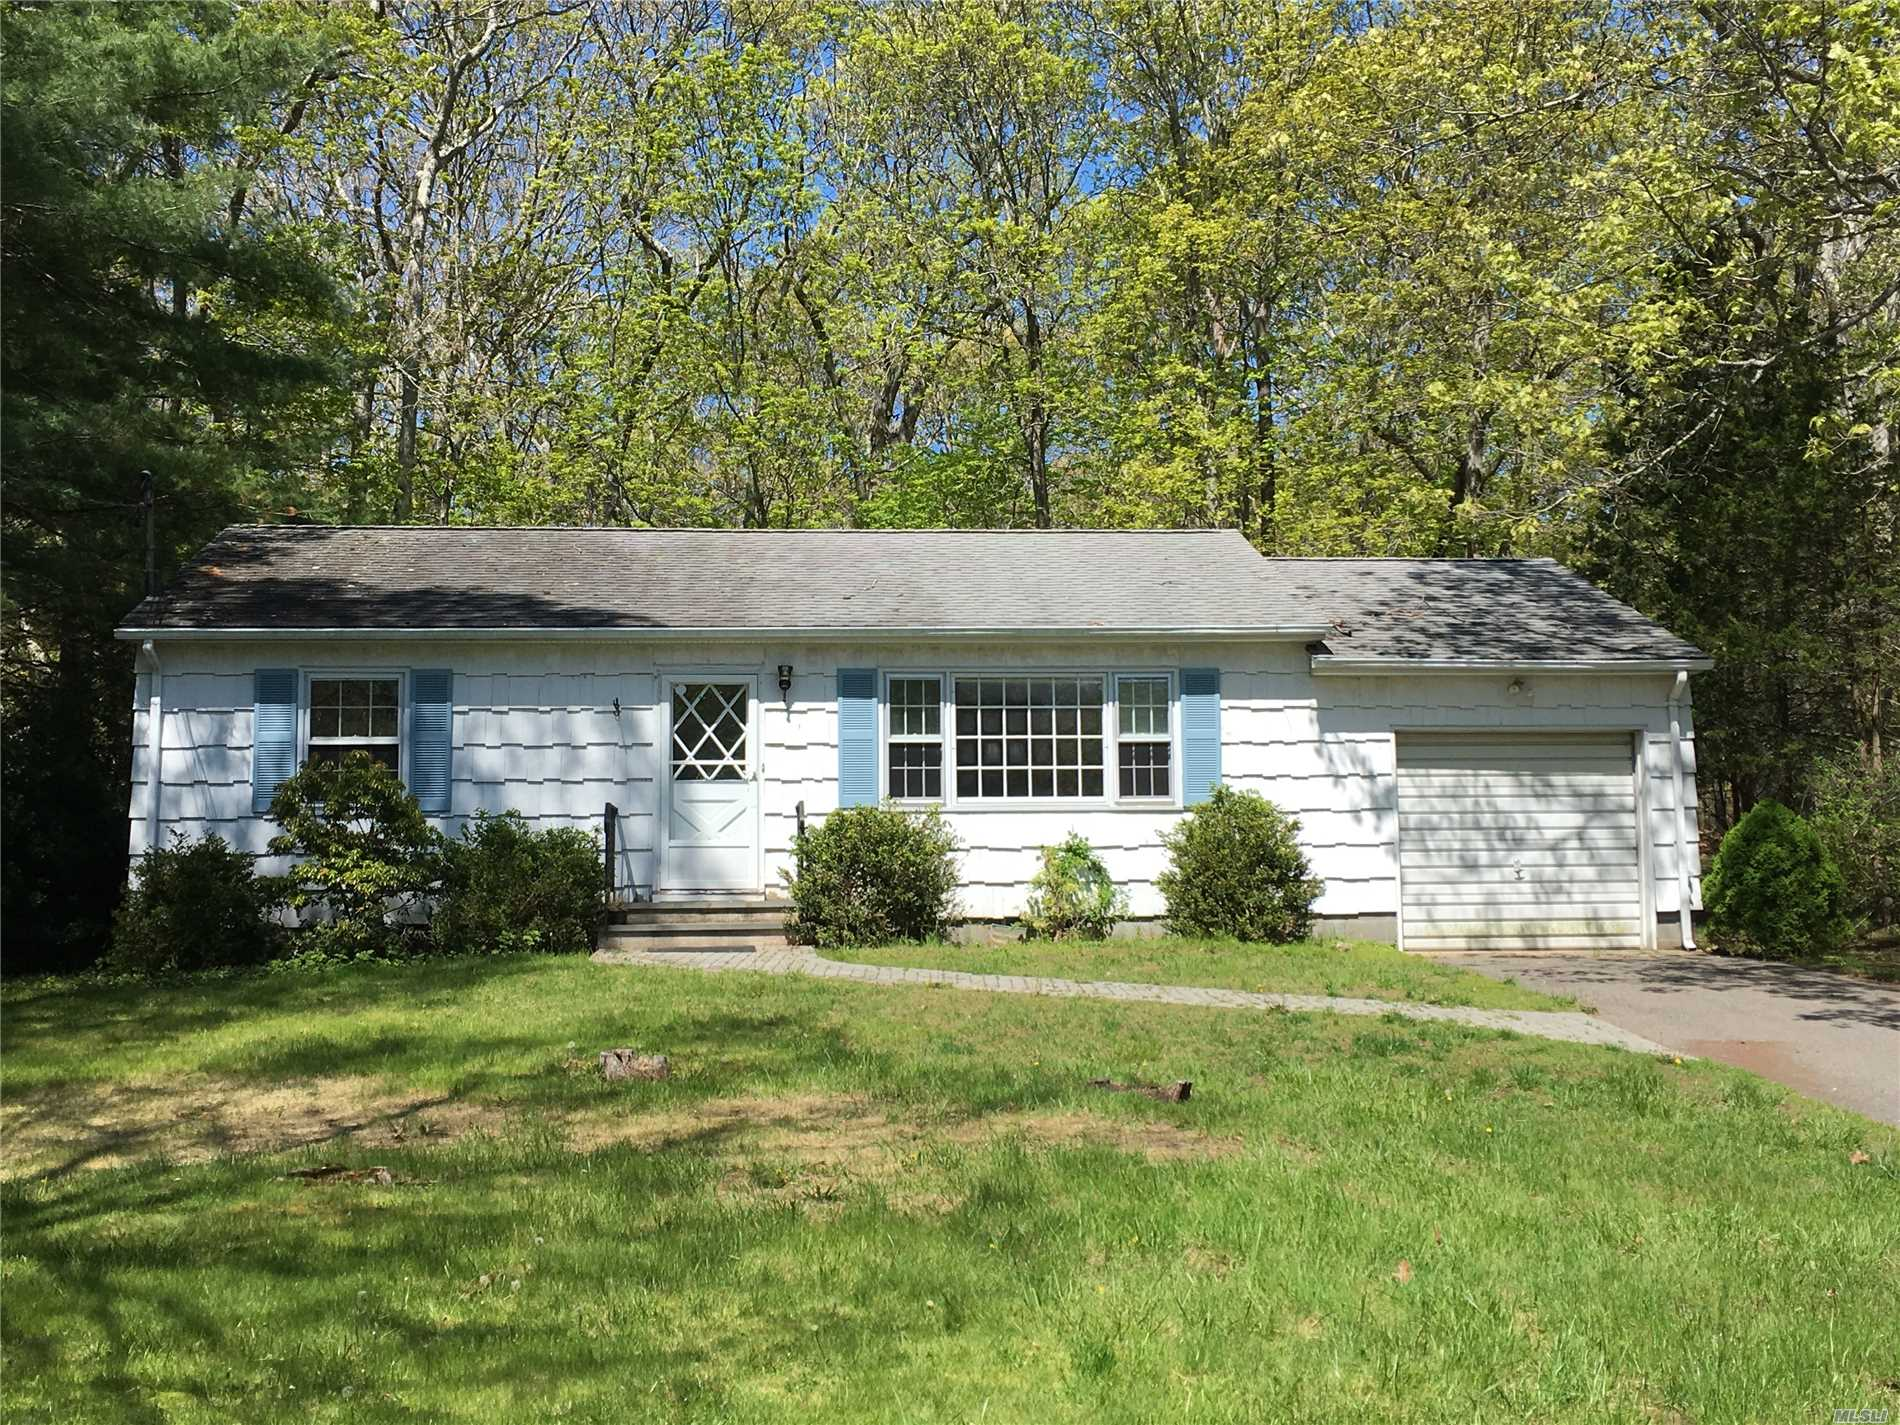 This Beautiful Ranch Offers A Simple And Easy Home To Maintain. Located On The Bayview Peninsula With A Number Of Amazing Beaches To Enjoy. This Home Offers Two Bedrooms, Large Eat In Kitchen, Great Living Room, Hardwood Flooring, An Attached Garage And A Full Basement. The Property Size Is 100' X 125'. Please Call For An Appointment.